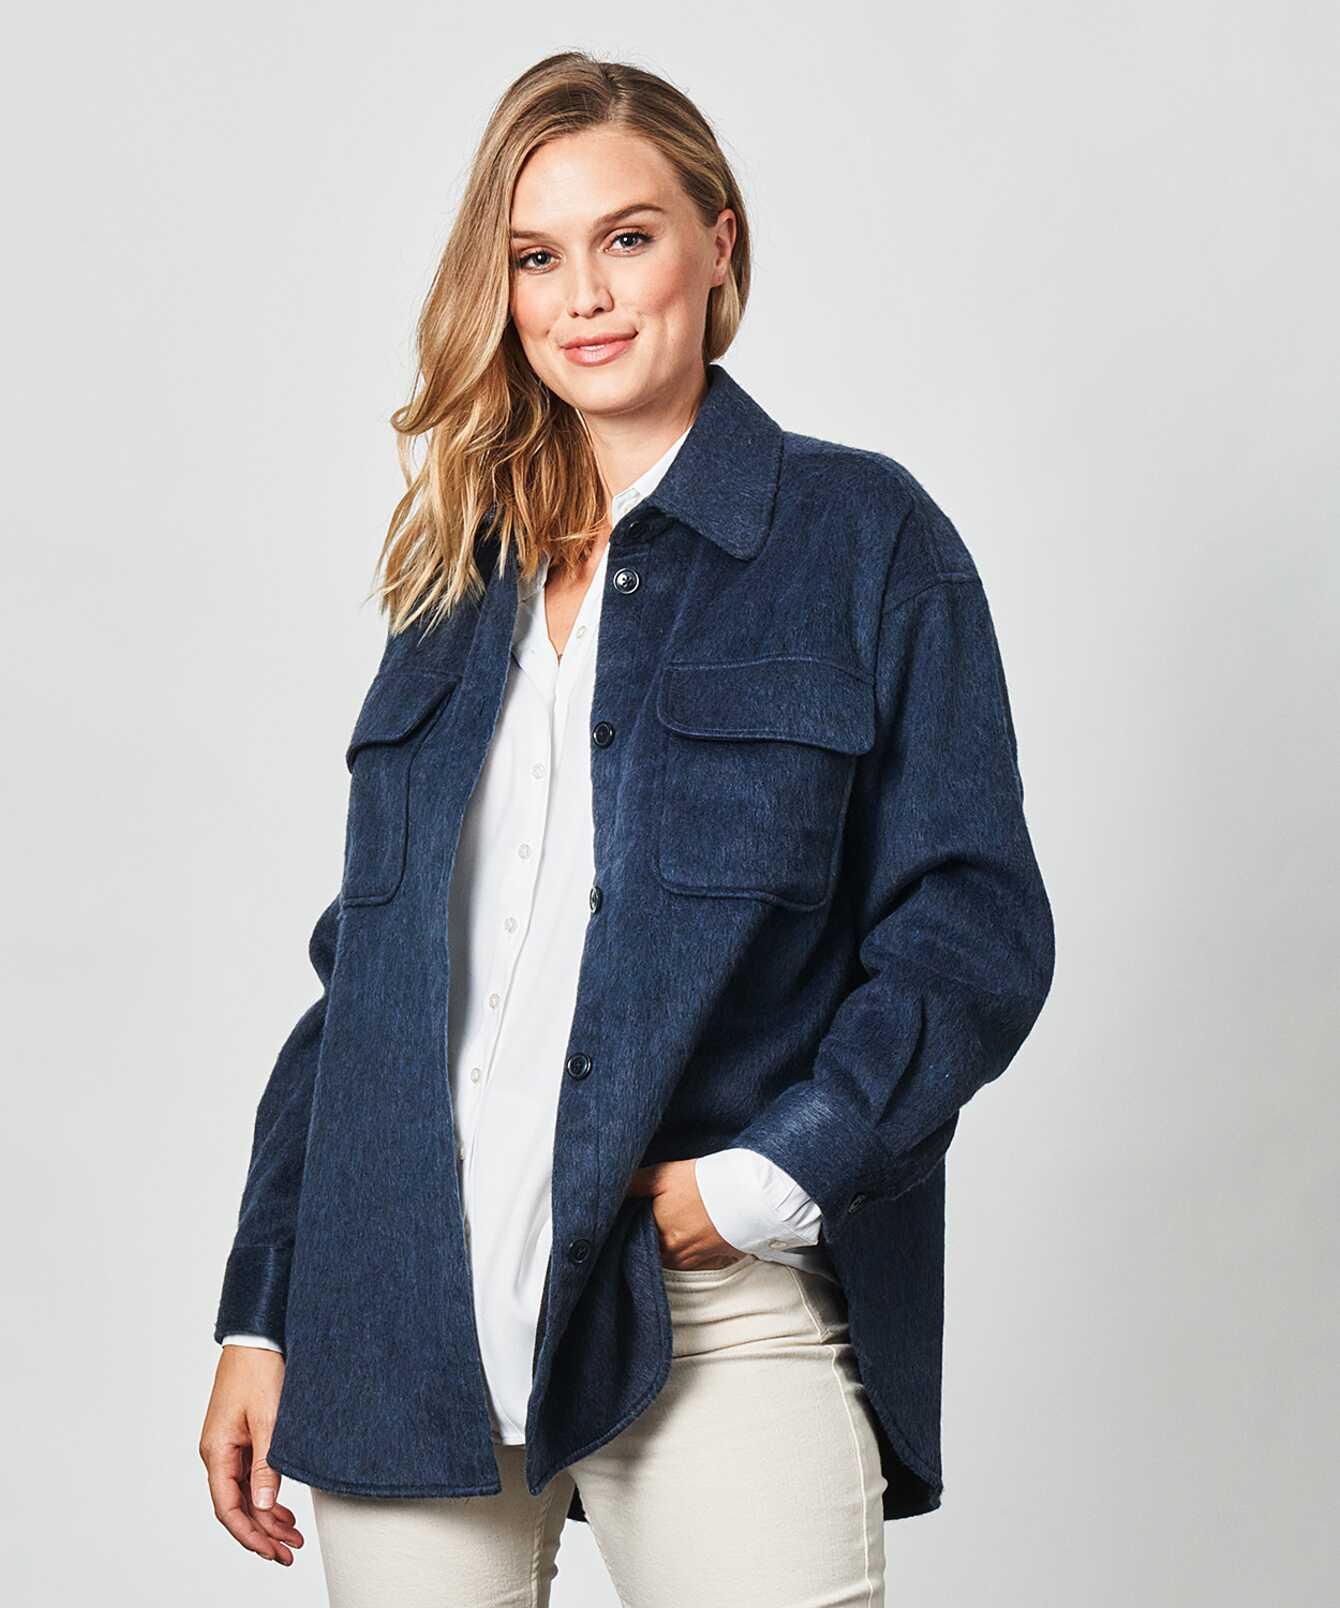 Shirt Holly Flanell Blue The Shirt Factory